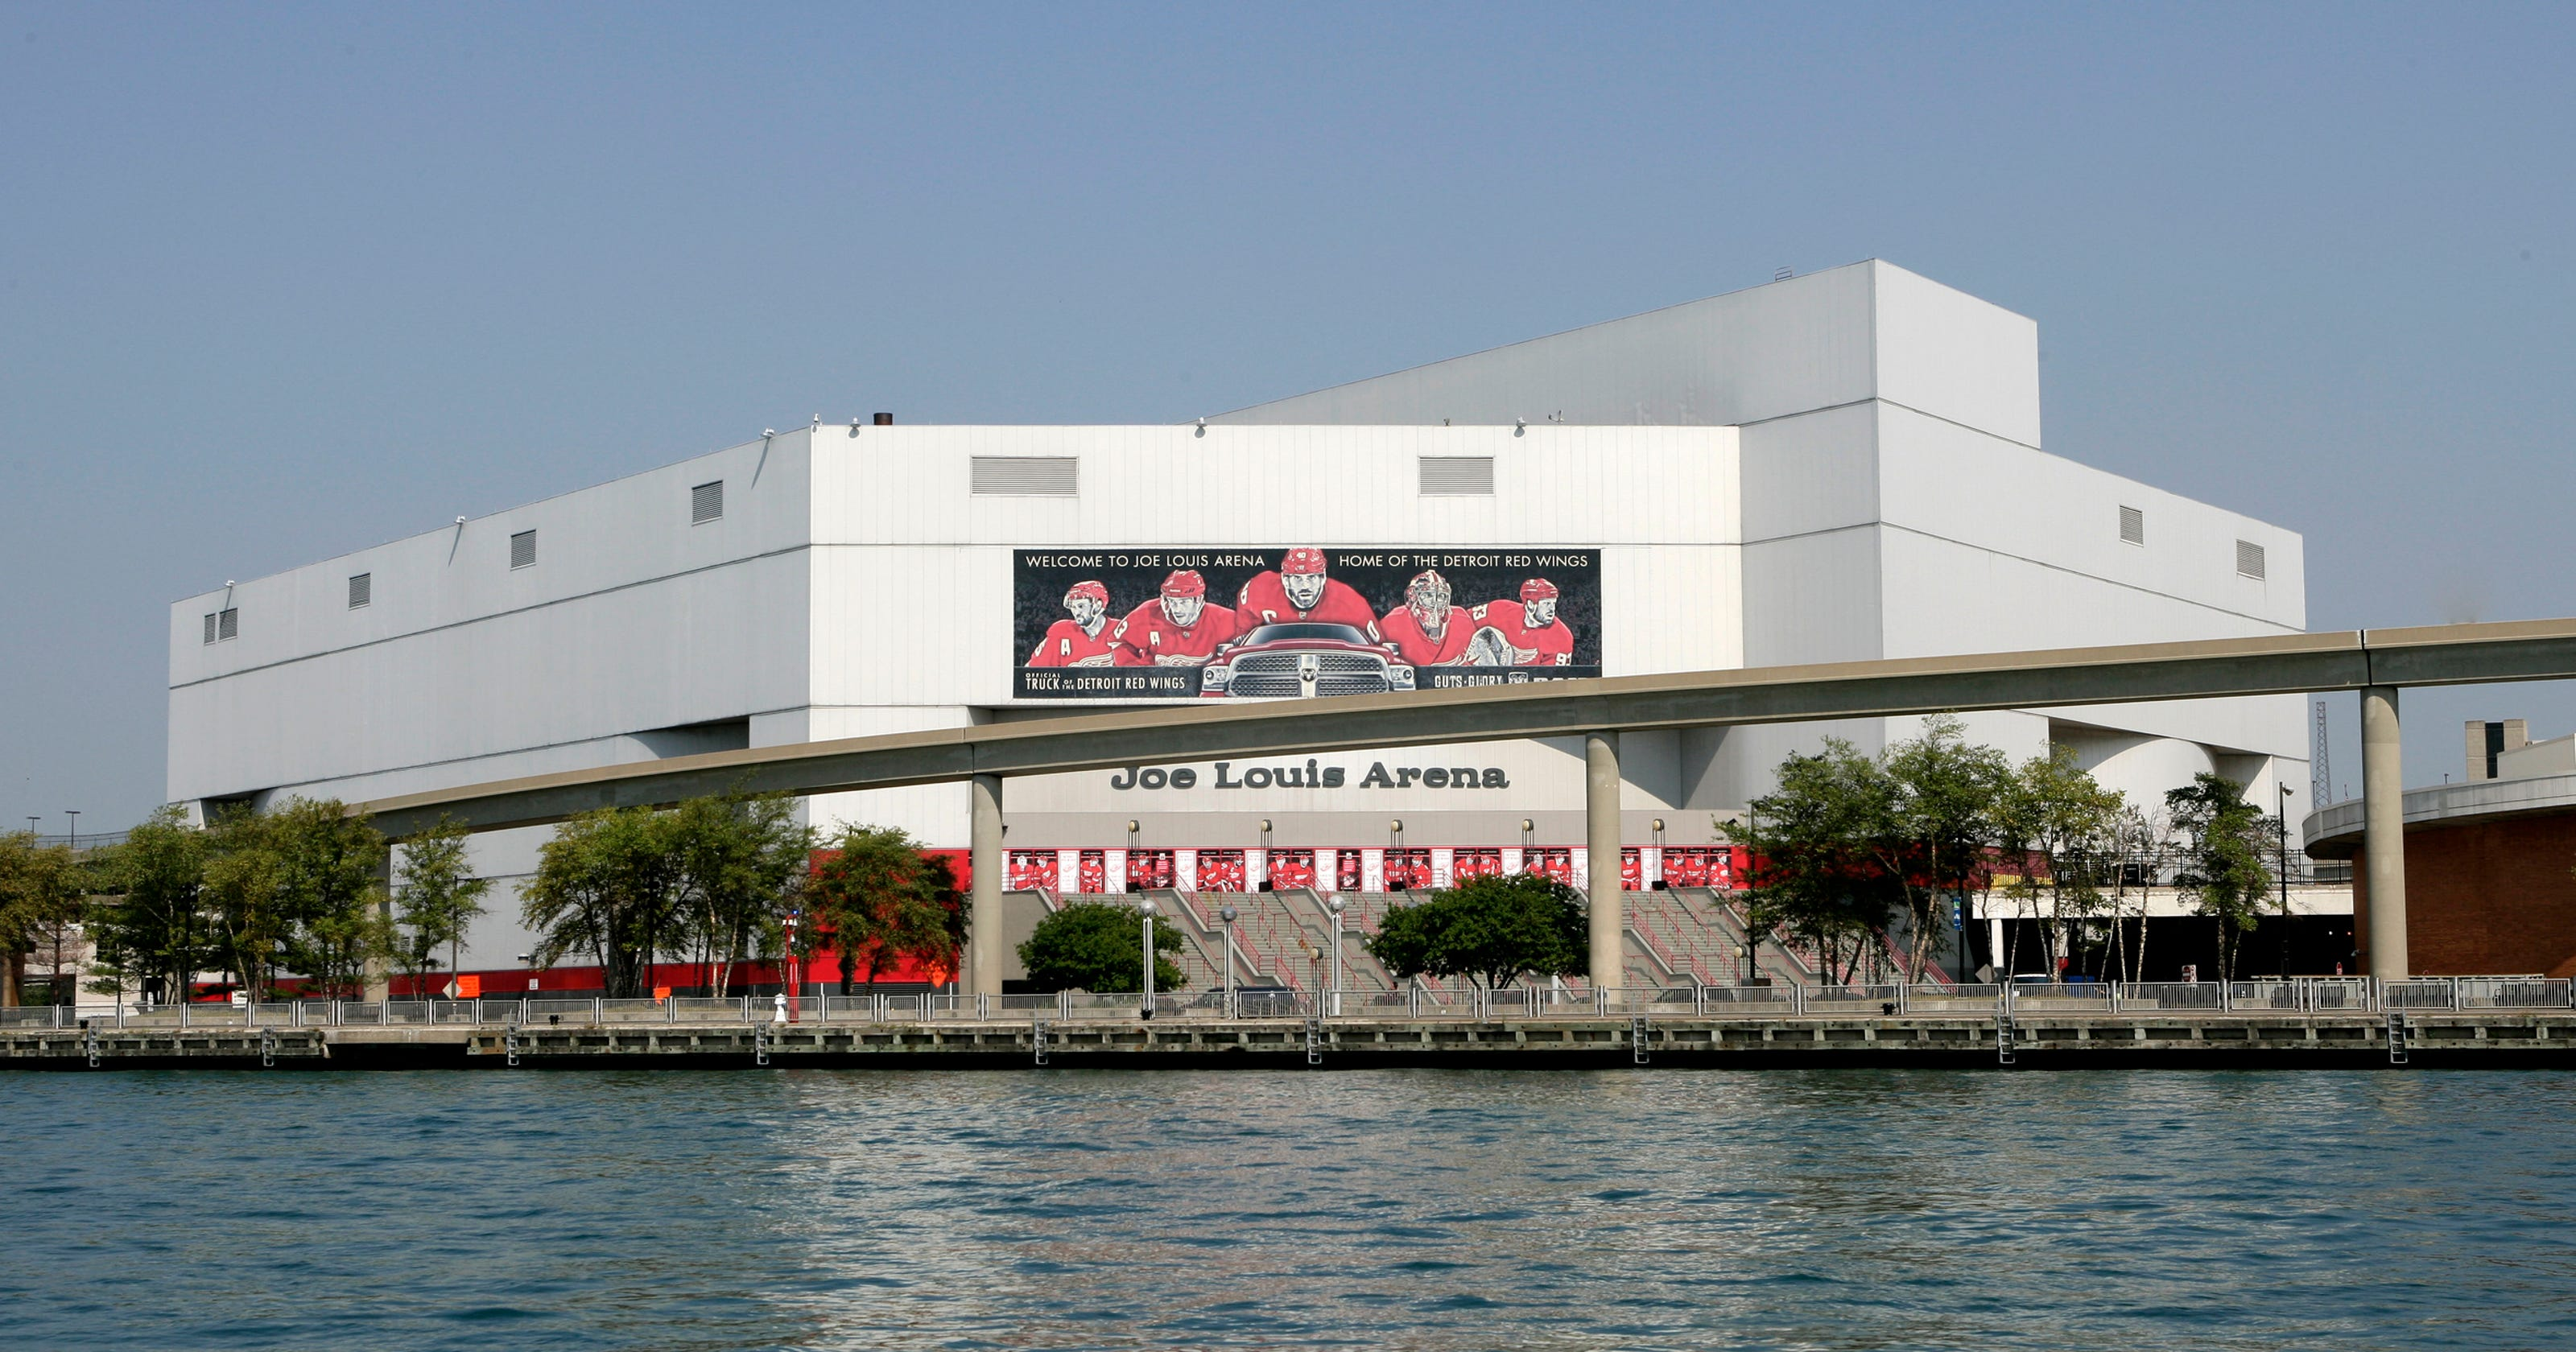 Ideas to honor Joe Louis pour in; mayor vows support